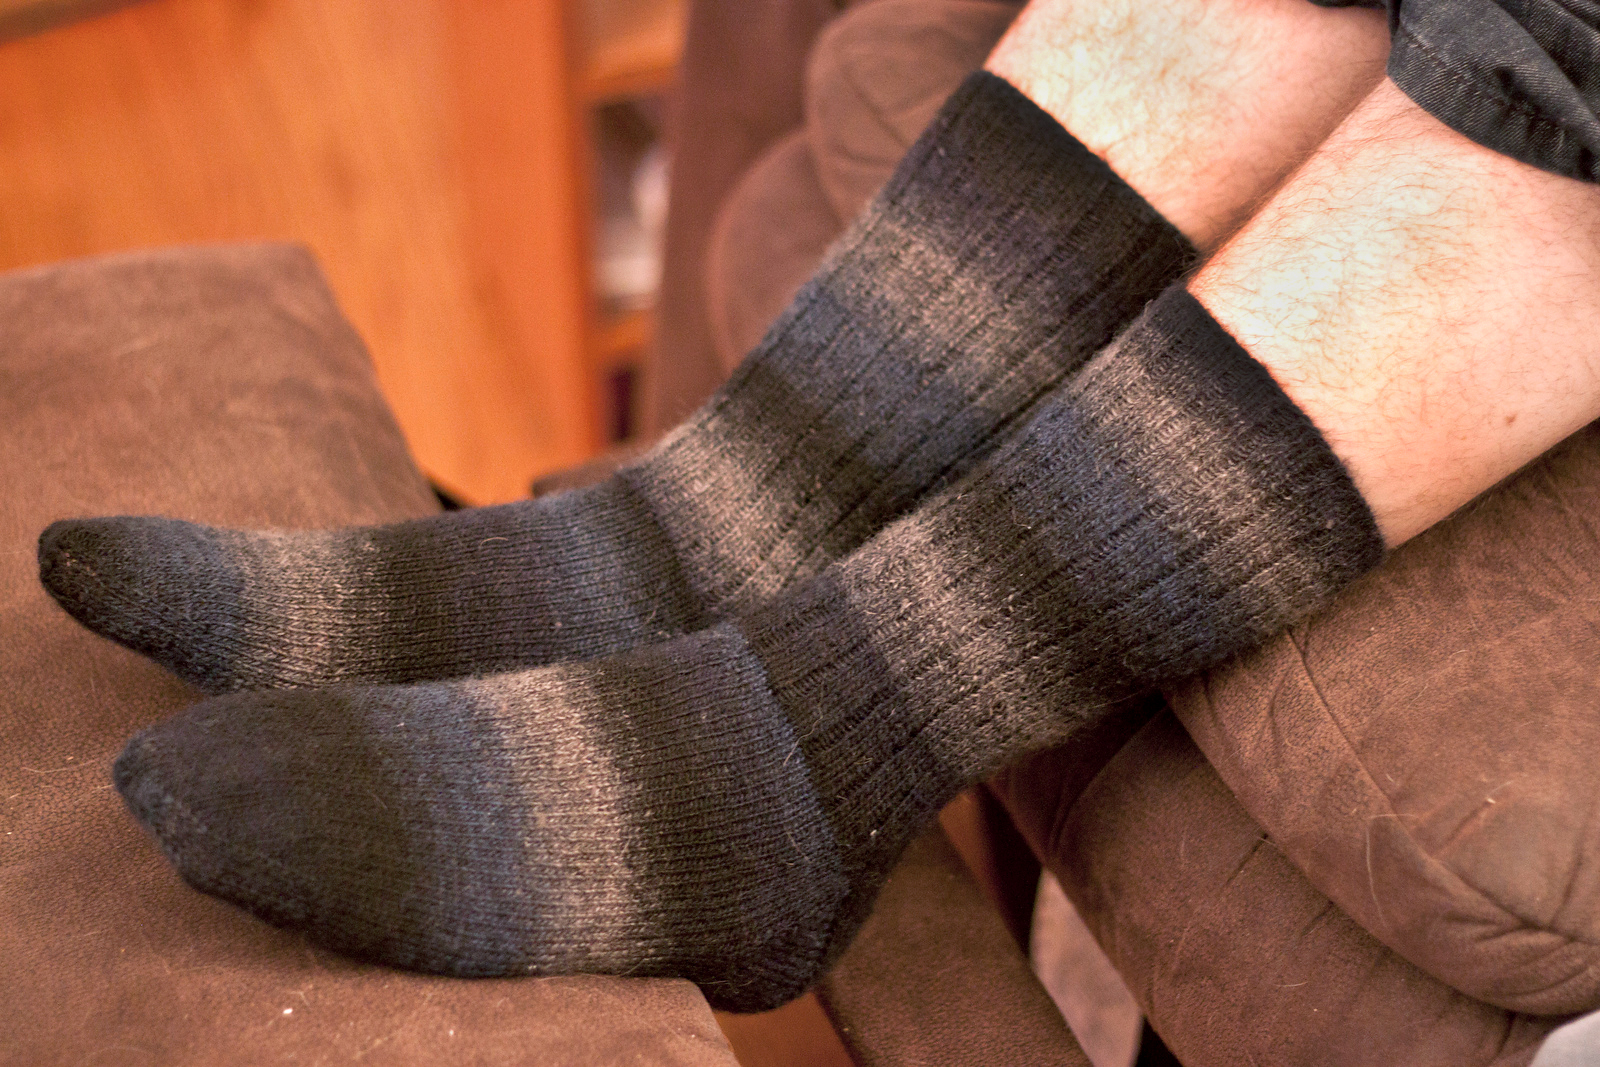 Jeff's socks made out of a self-striping yarn